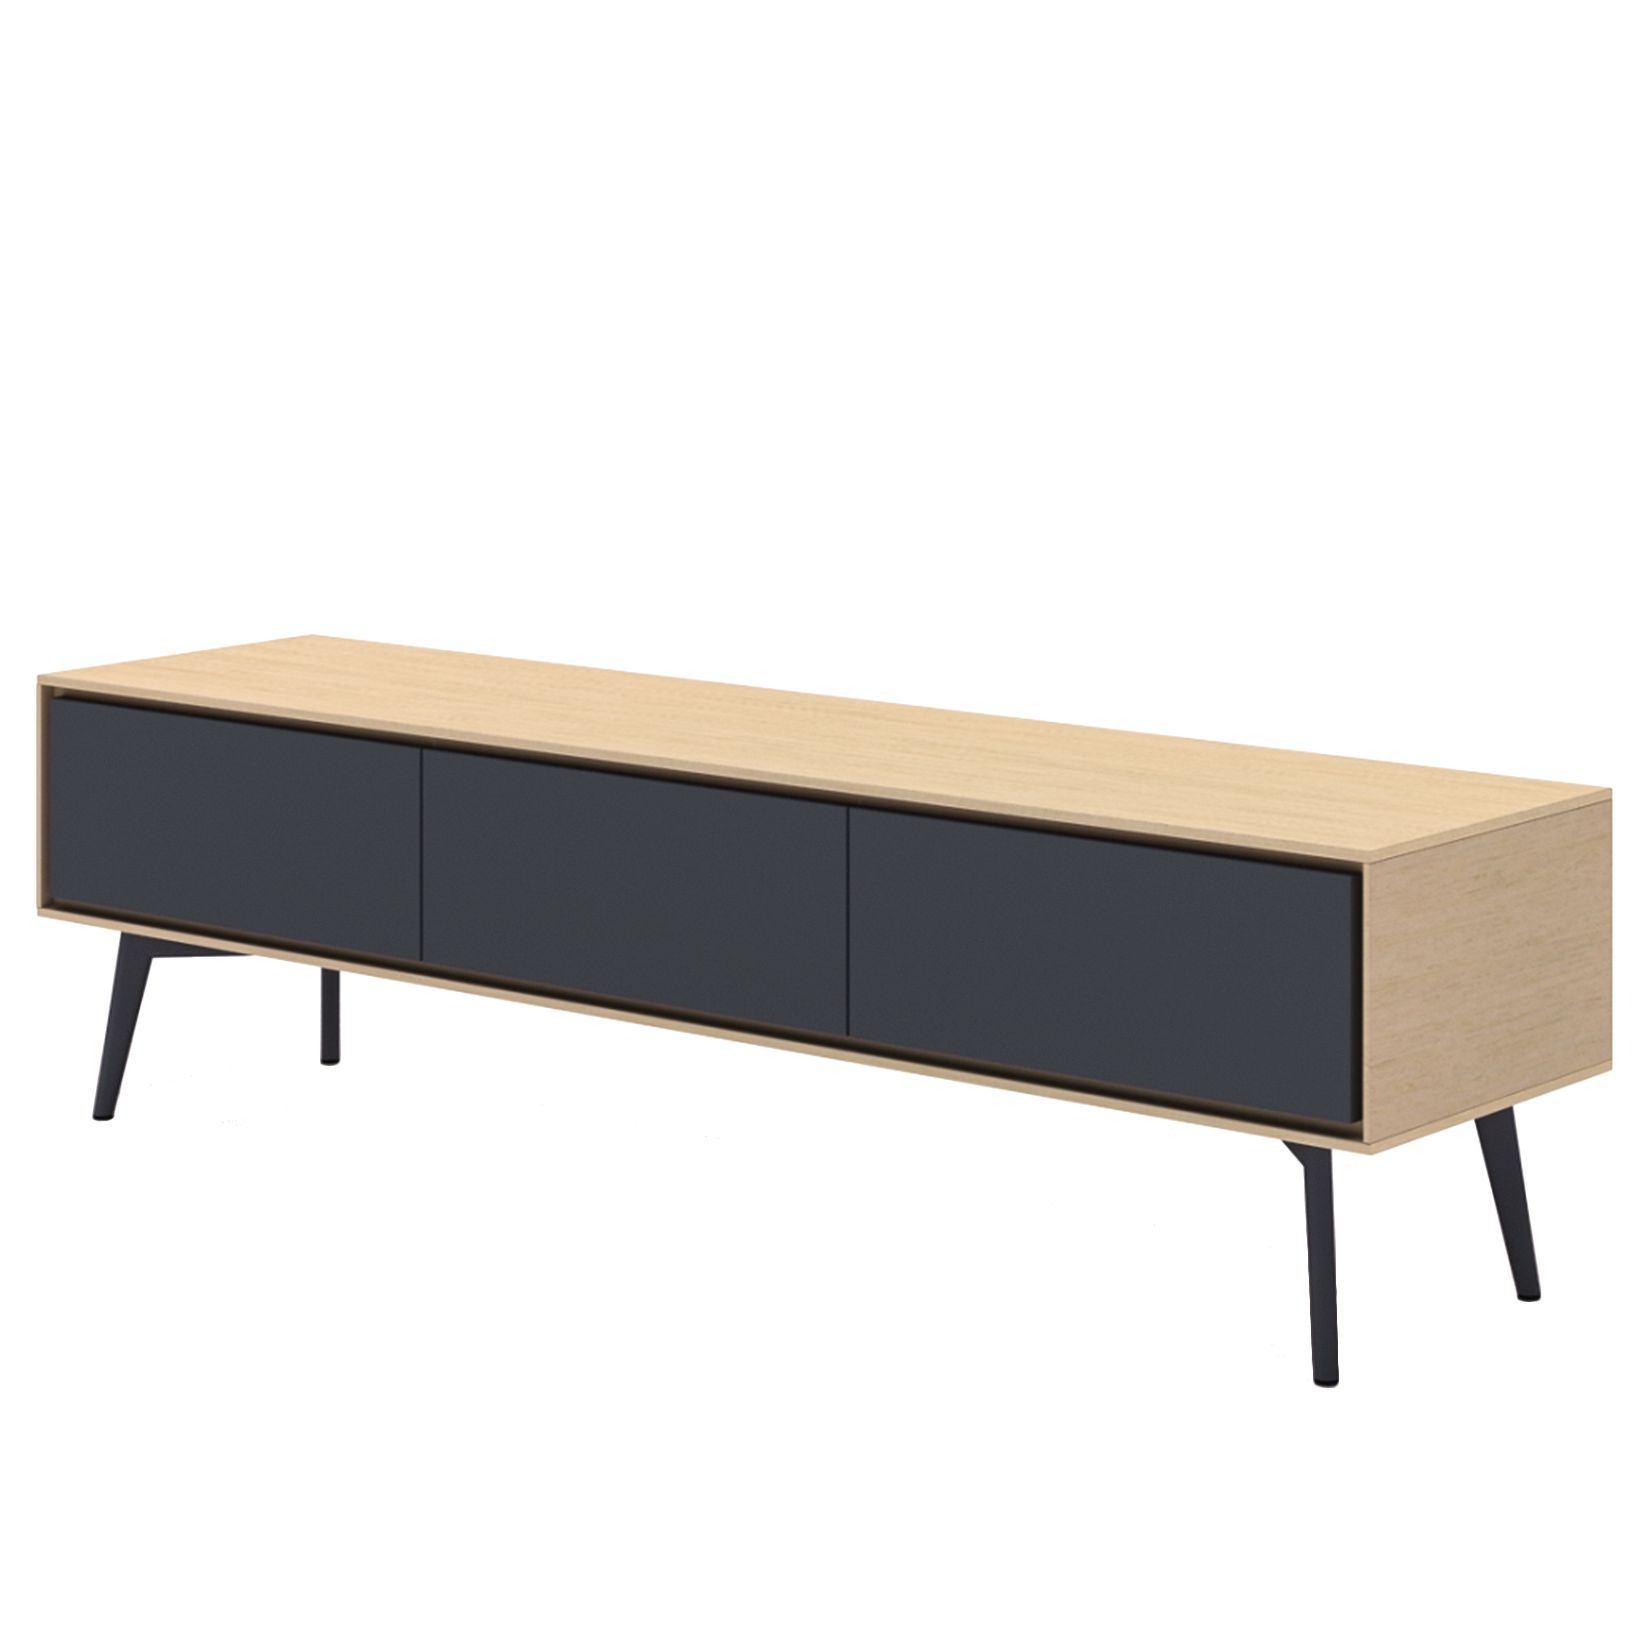 pin von ladendirekt auf tv hifi m bel pinterest tv hifi m bel hifi m bel und wohnzimmer tv. Black Bedroom Furniture Sets. Home Design Ideas